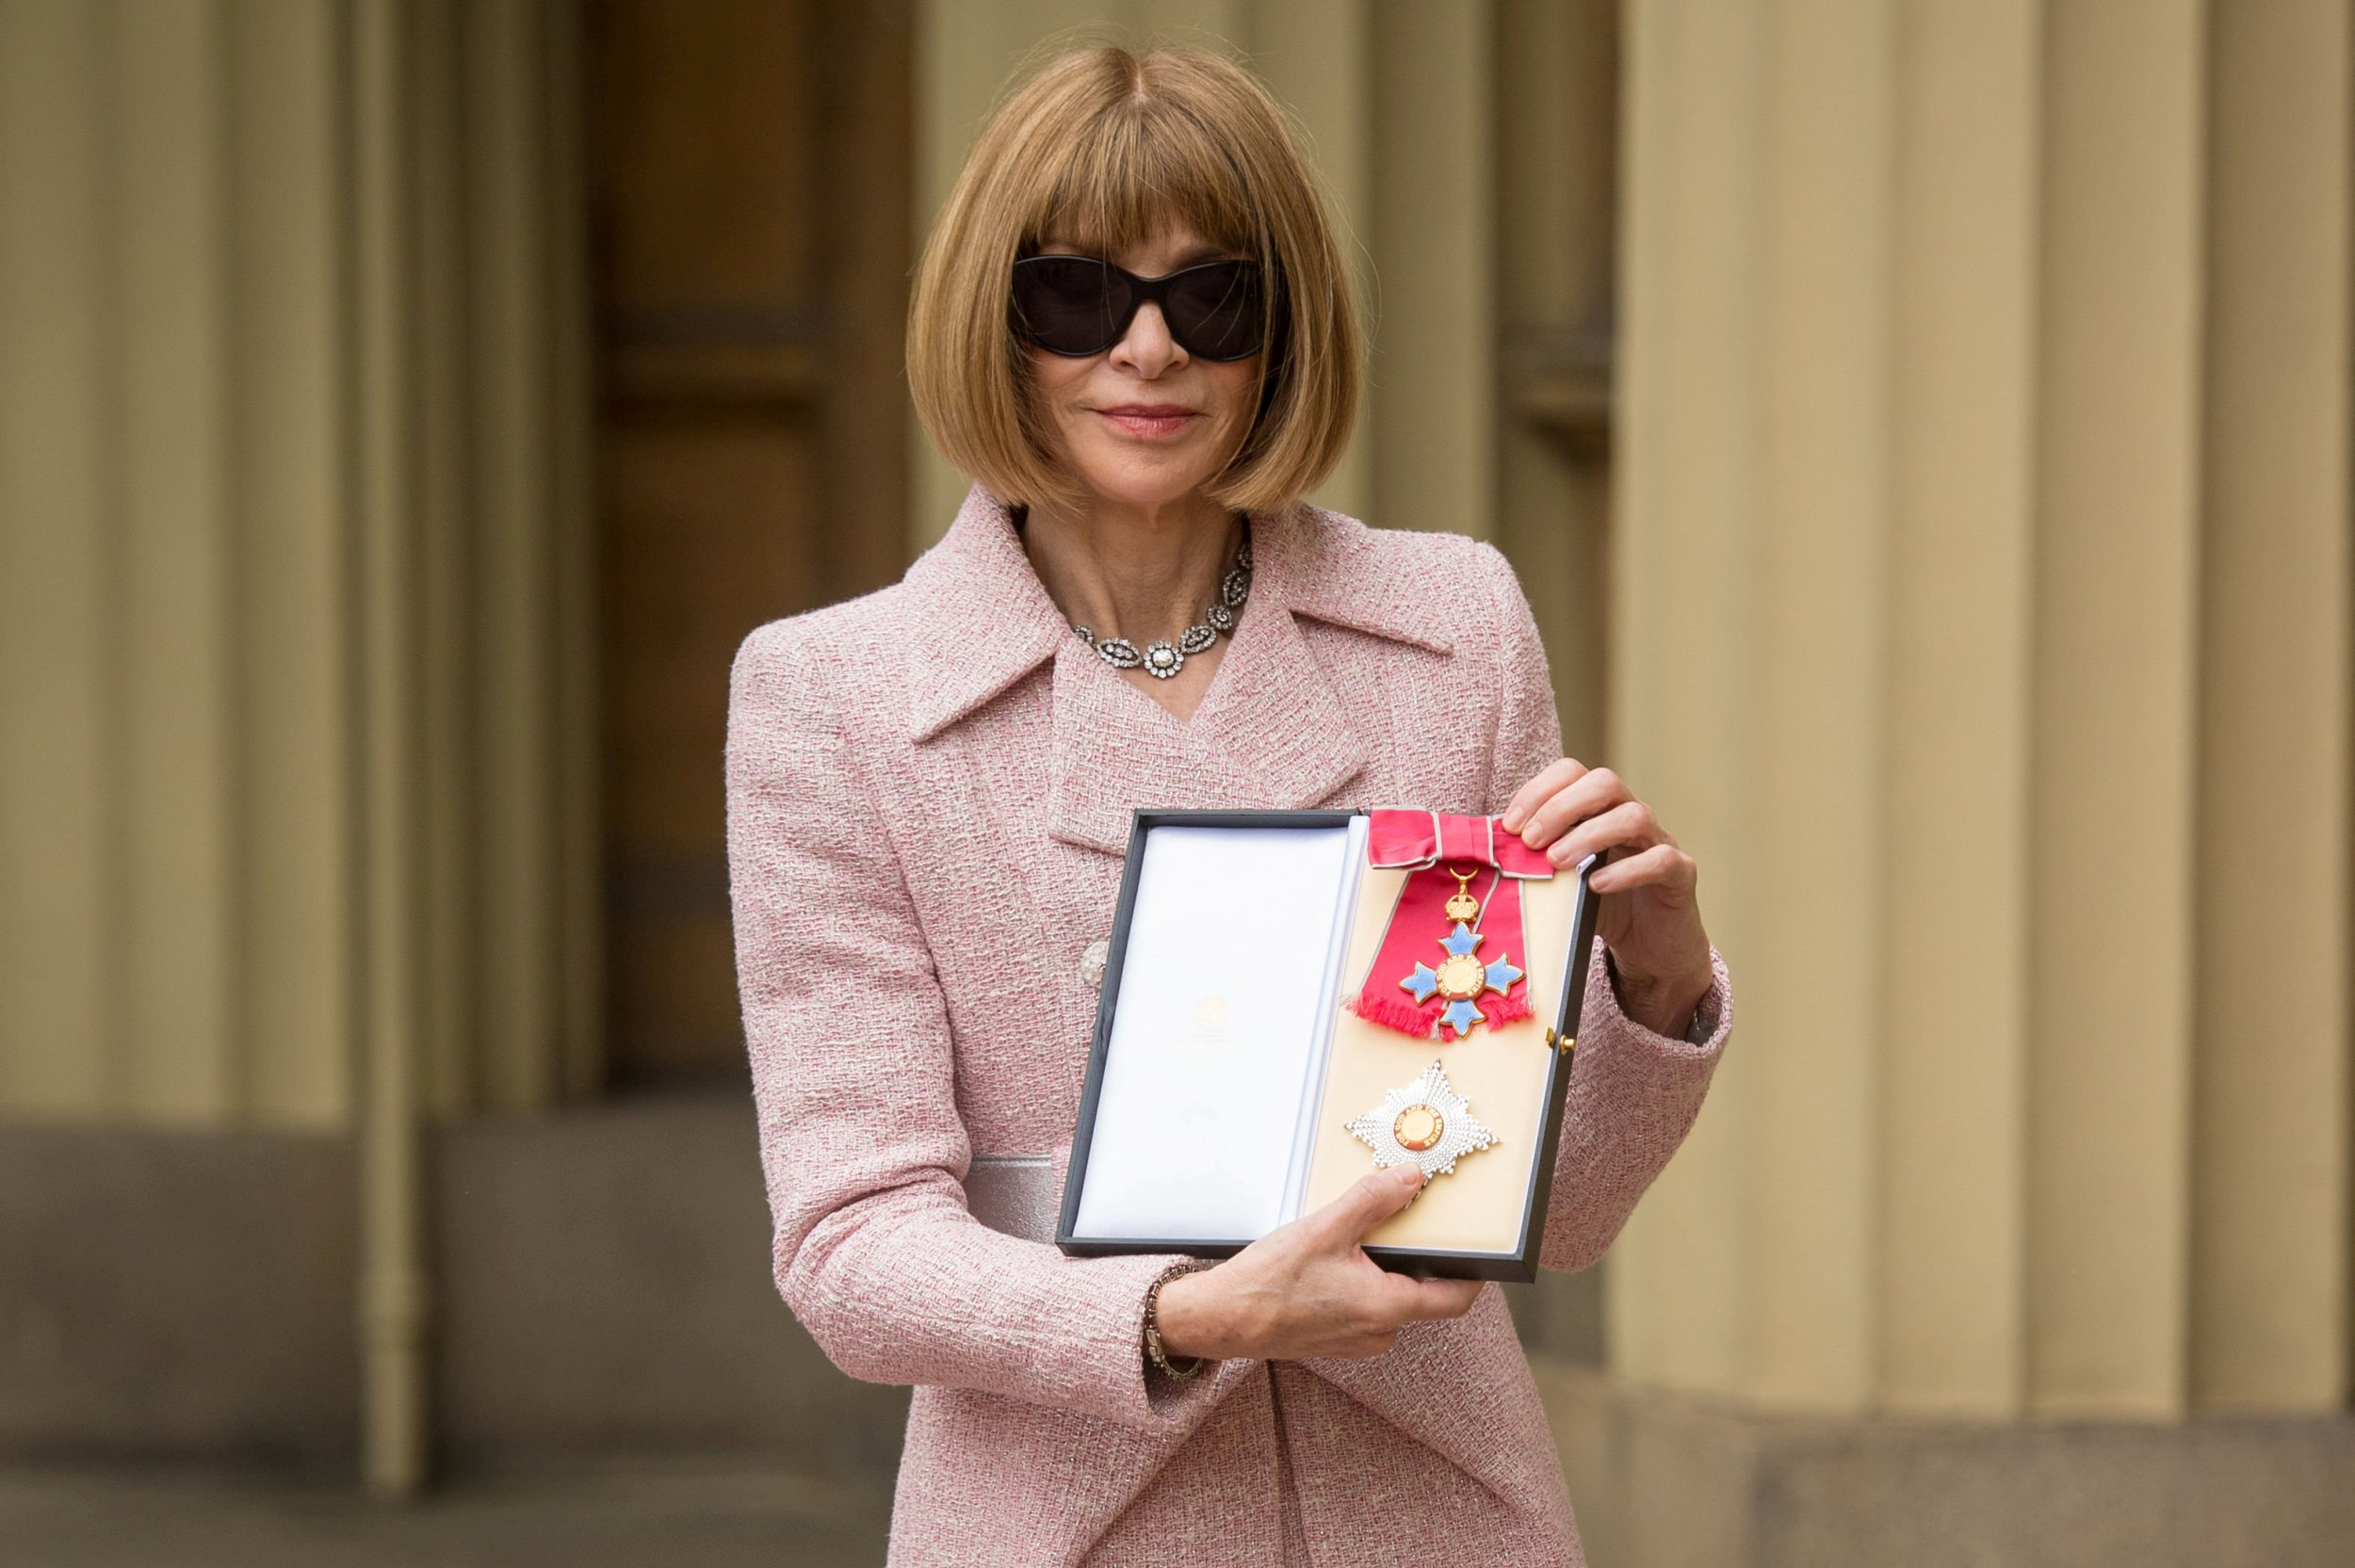 Anna Wintour, British Editor Of American Vogue, Is Now A Dame